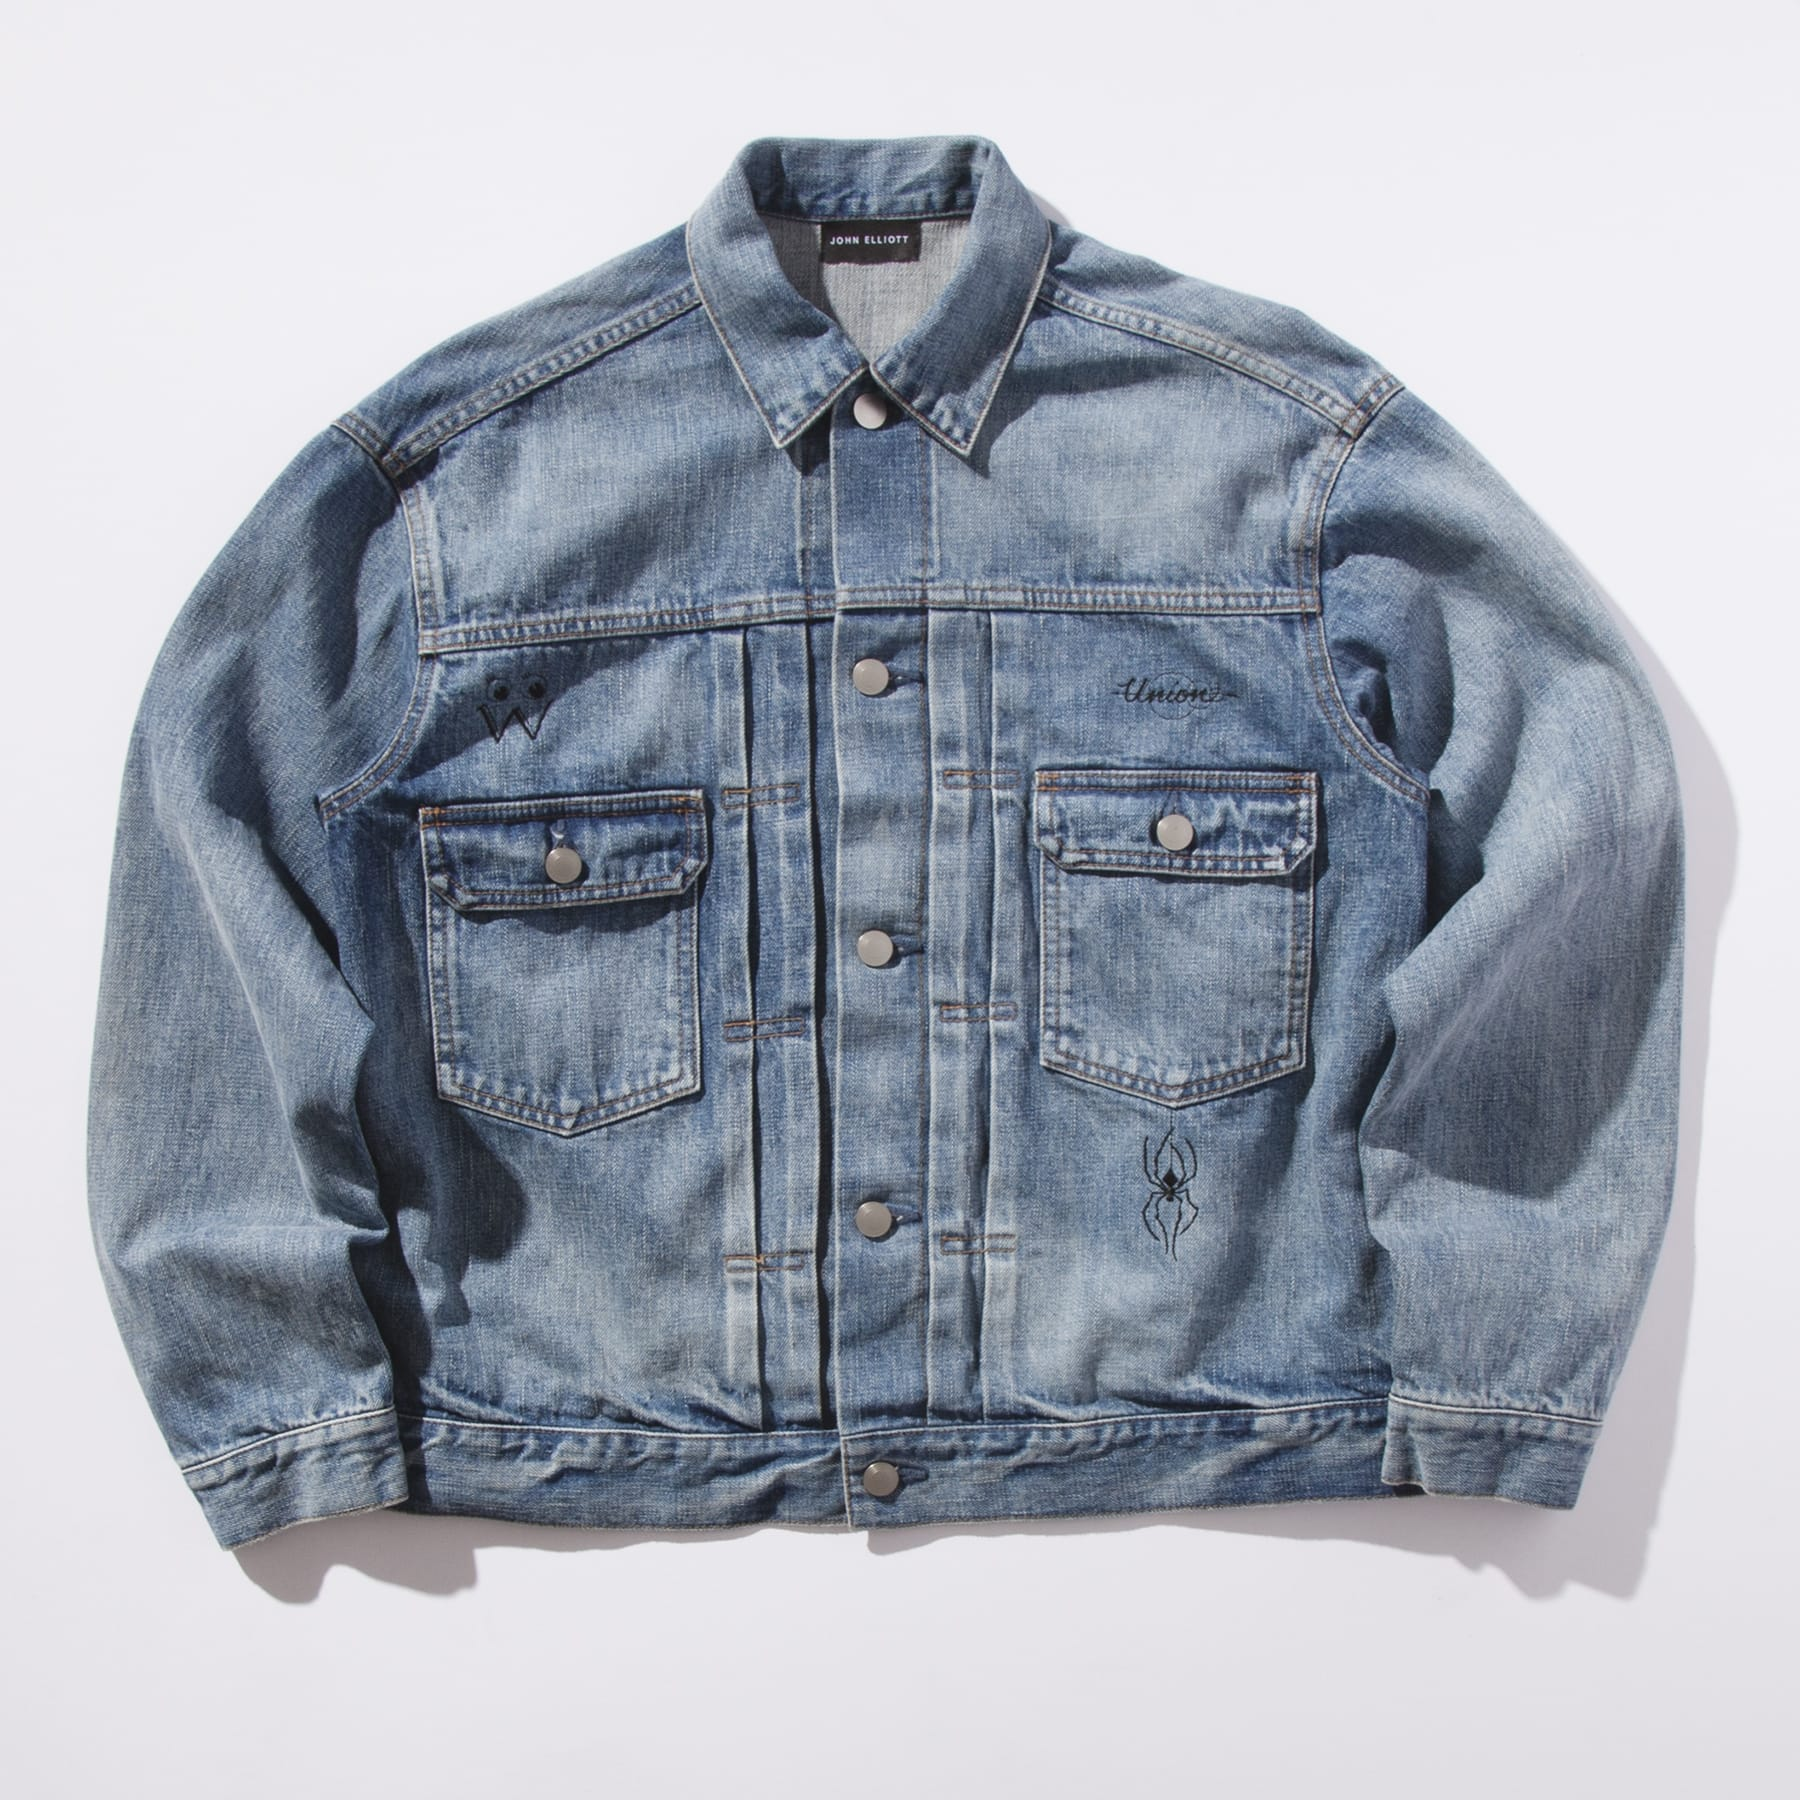 John Elliott x Union x Dr. Woo Selvedge Denim Jacket